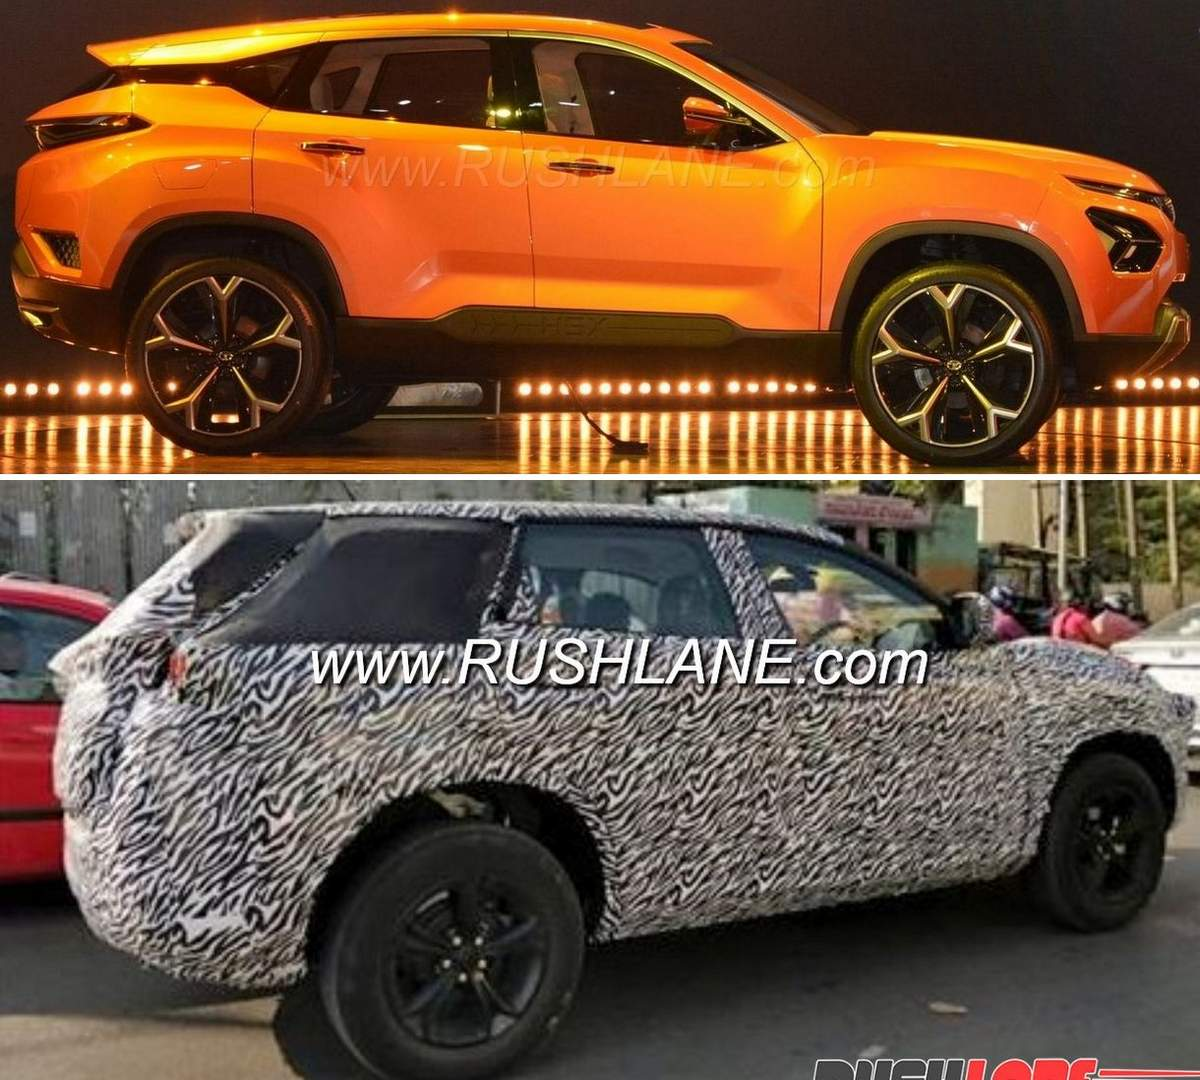 Tata H7X SUV with 3 row seating spied on test in Ooty